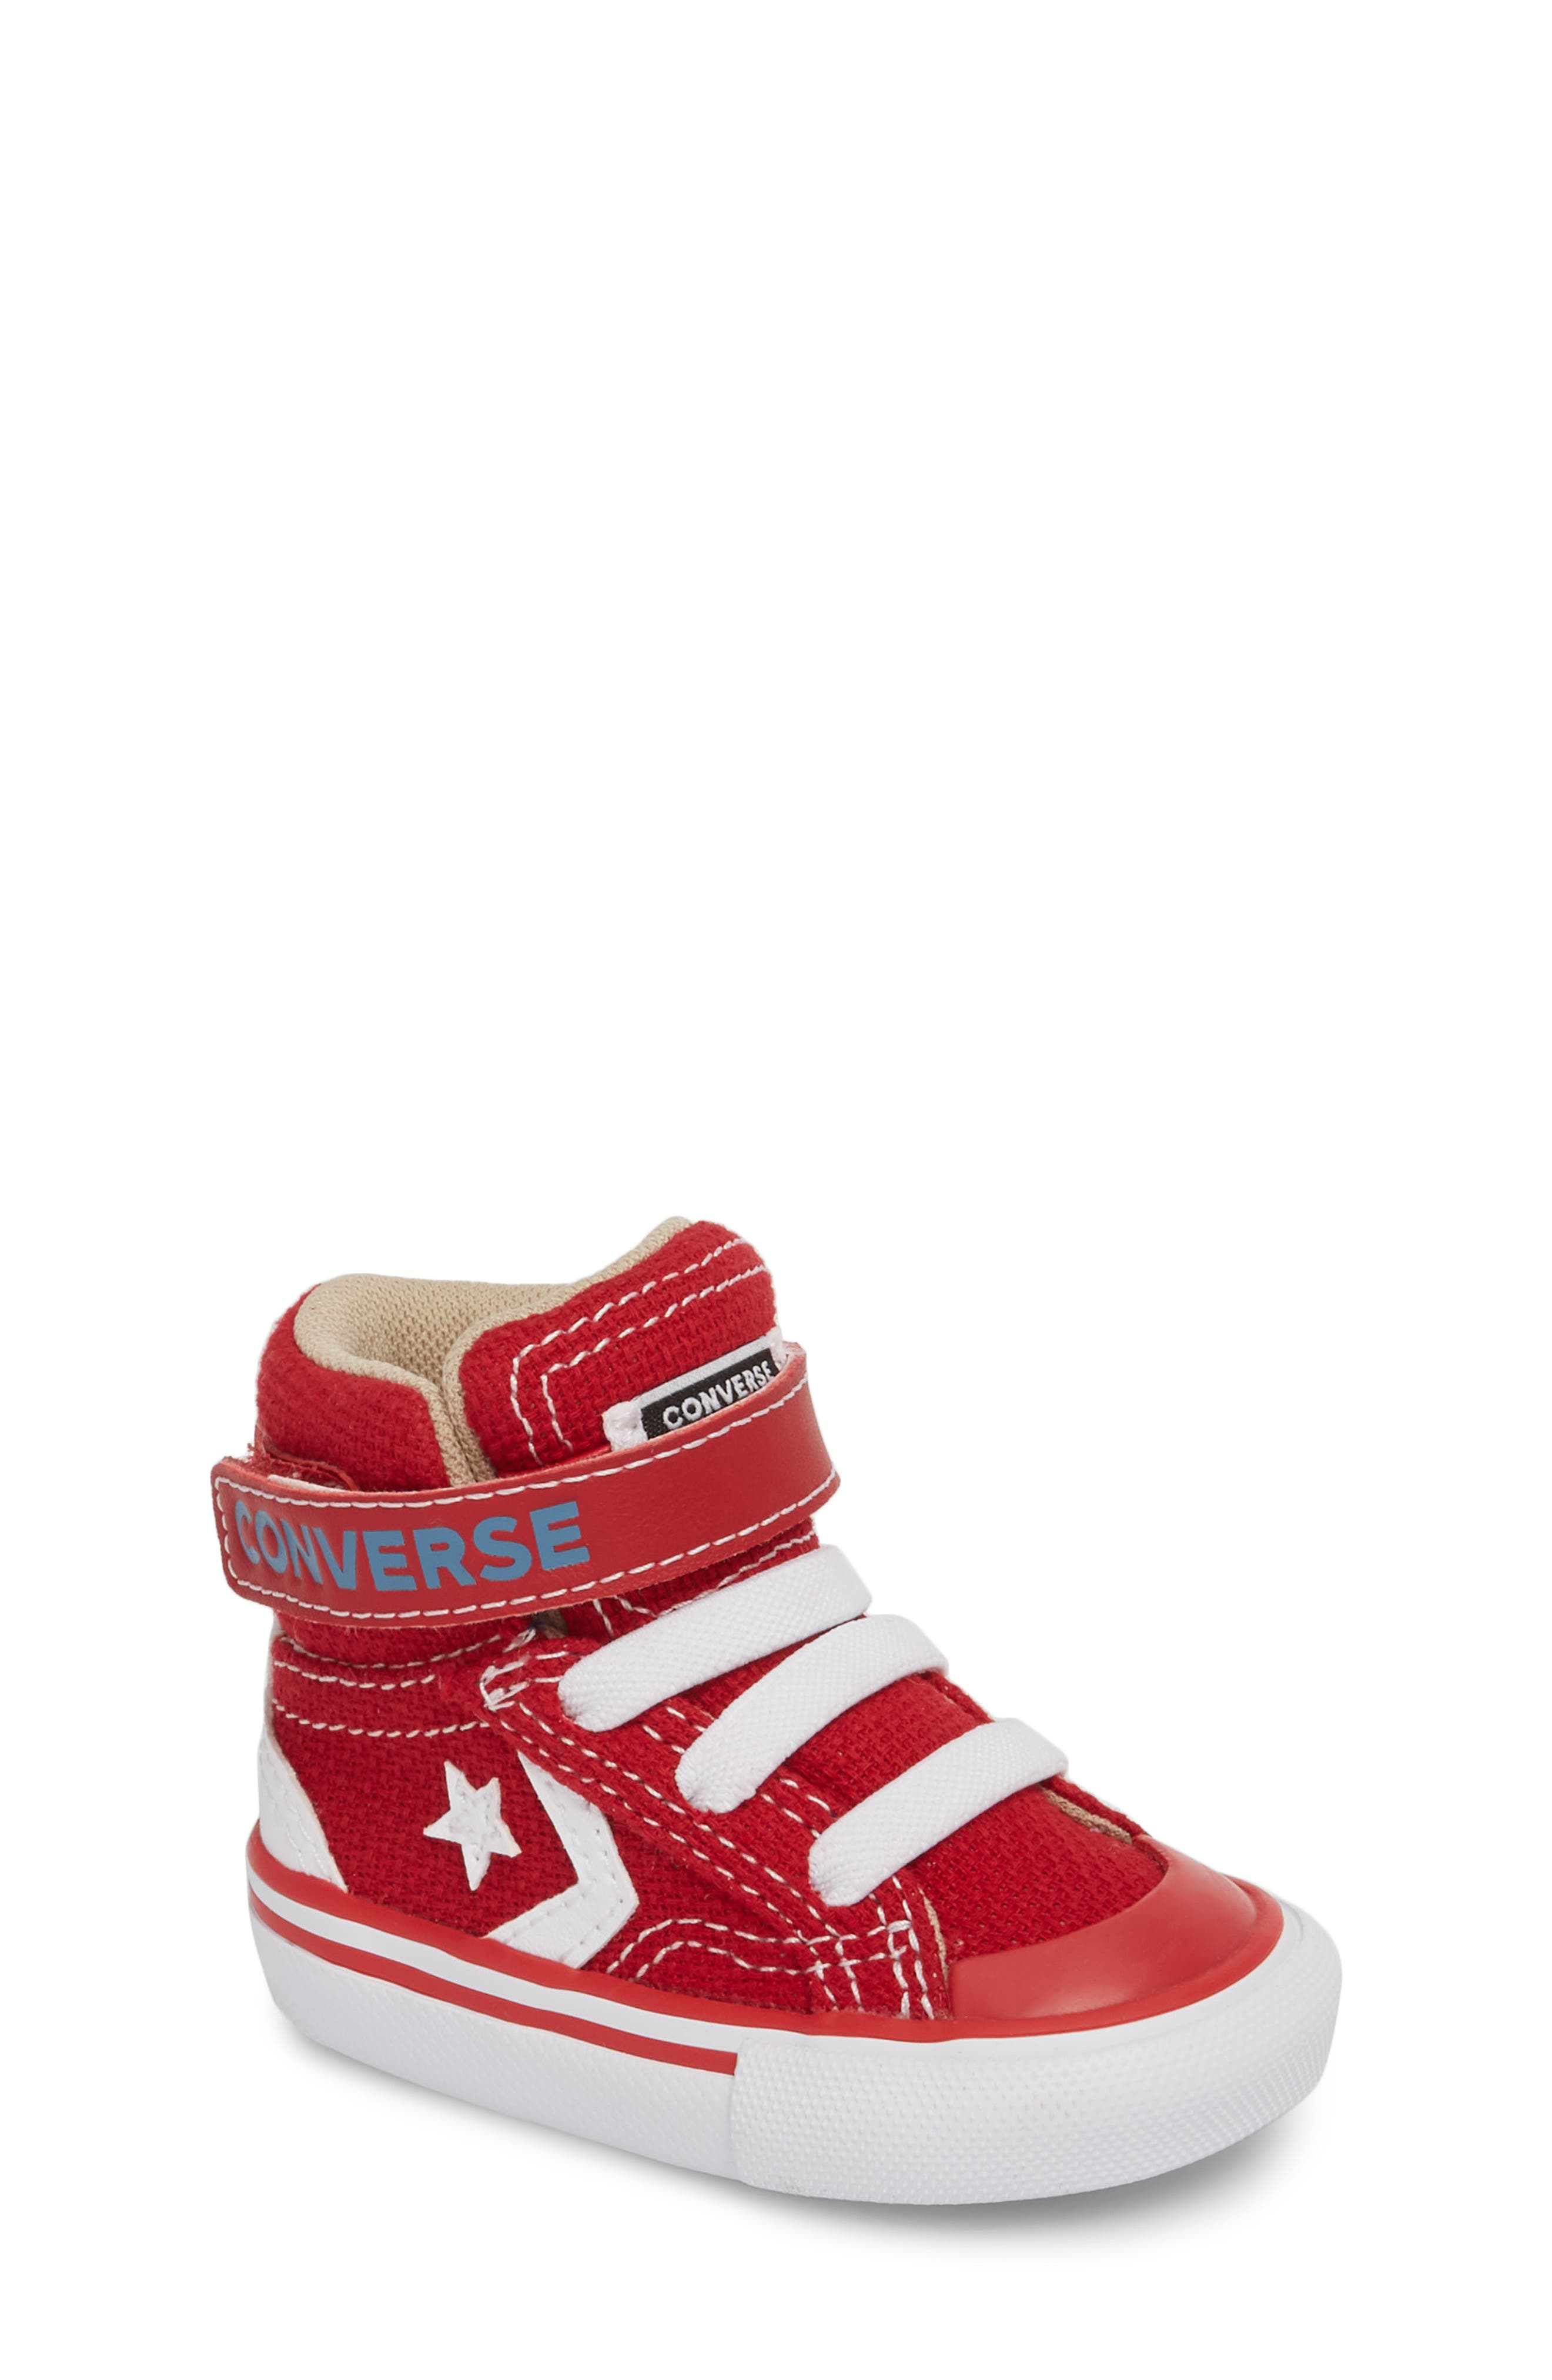 Pro Blaze High Top Sneaker,                         Main,                         color, Gym Red